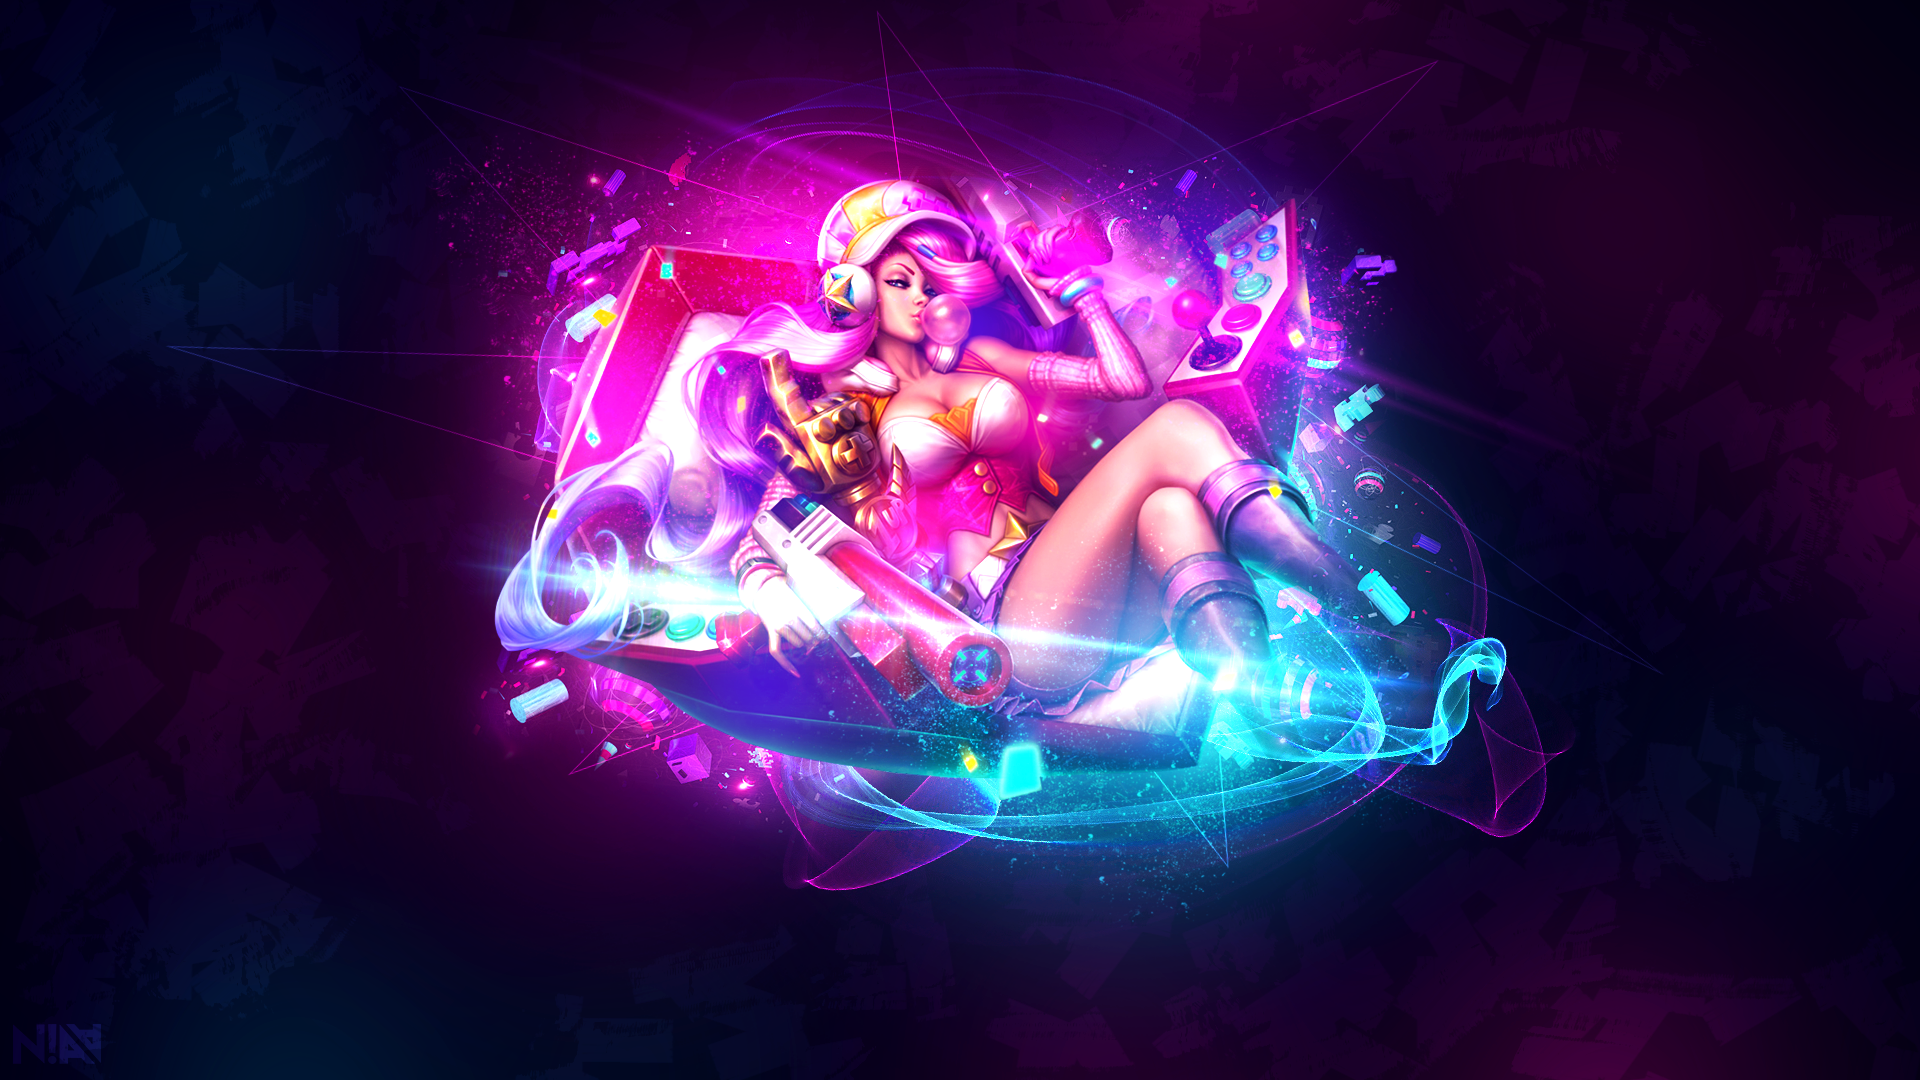 Arcade Miss Fortune Wallpaper By Aliceemad On Deviantart